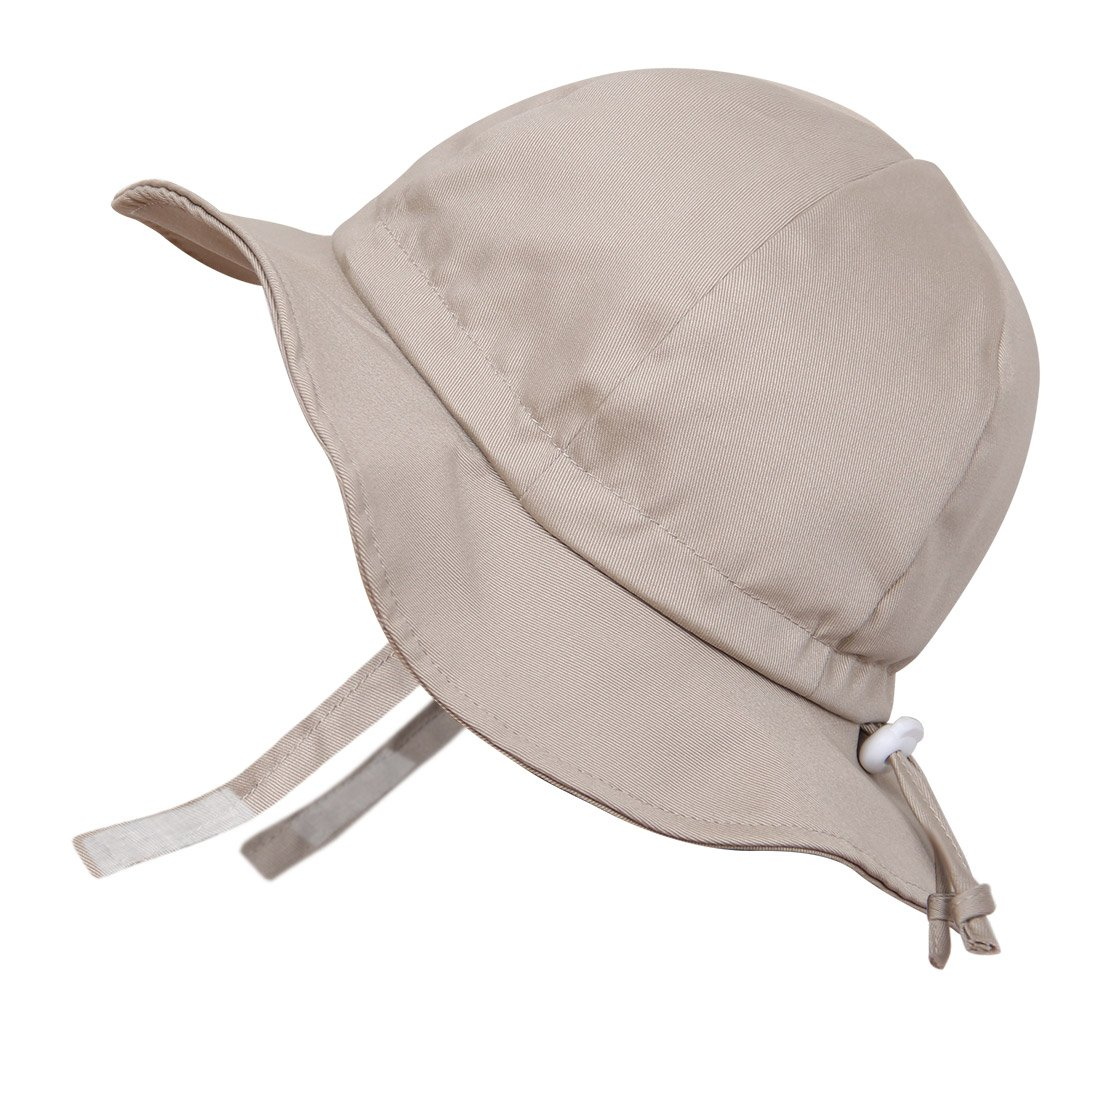 Kids 50+ UPF Sun Protection Hat, Size Adjustable Breathable With Chin Strap(L: 3Y - 12Y, Grey argyle) Twinklebelle 15-42L